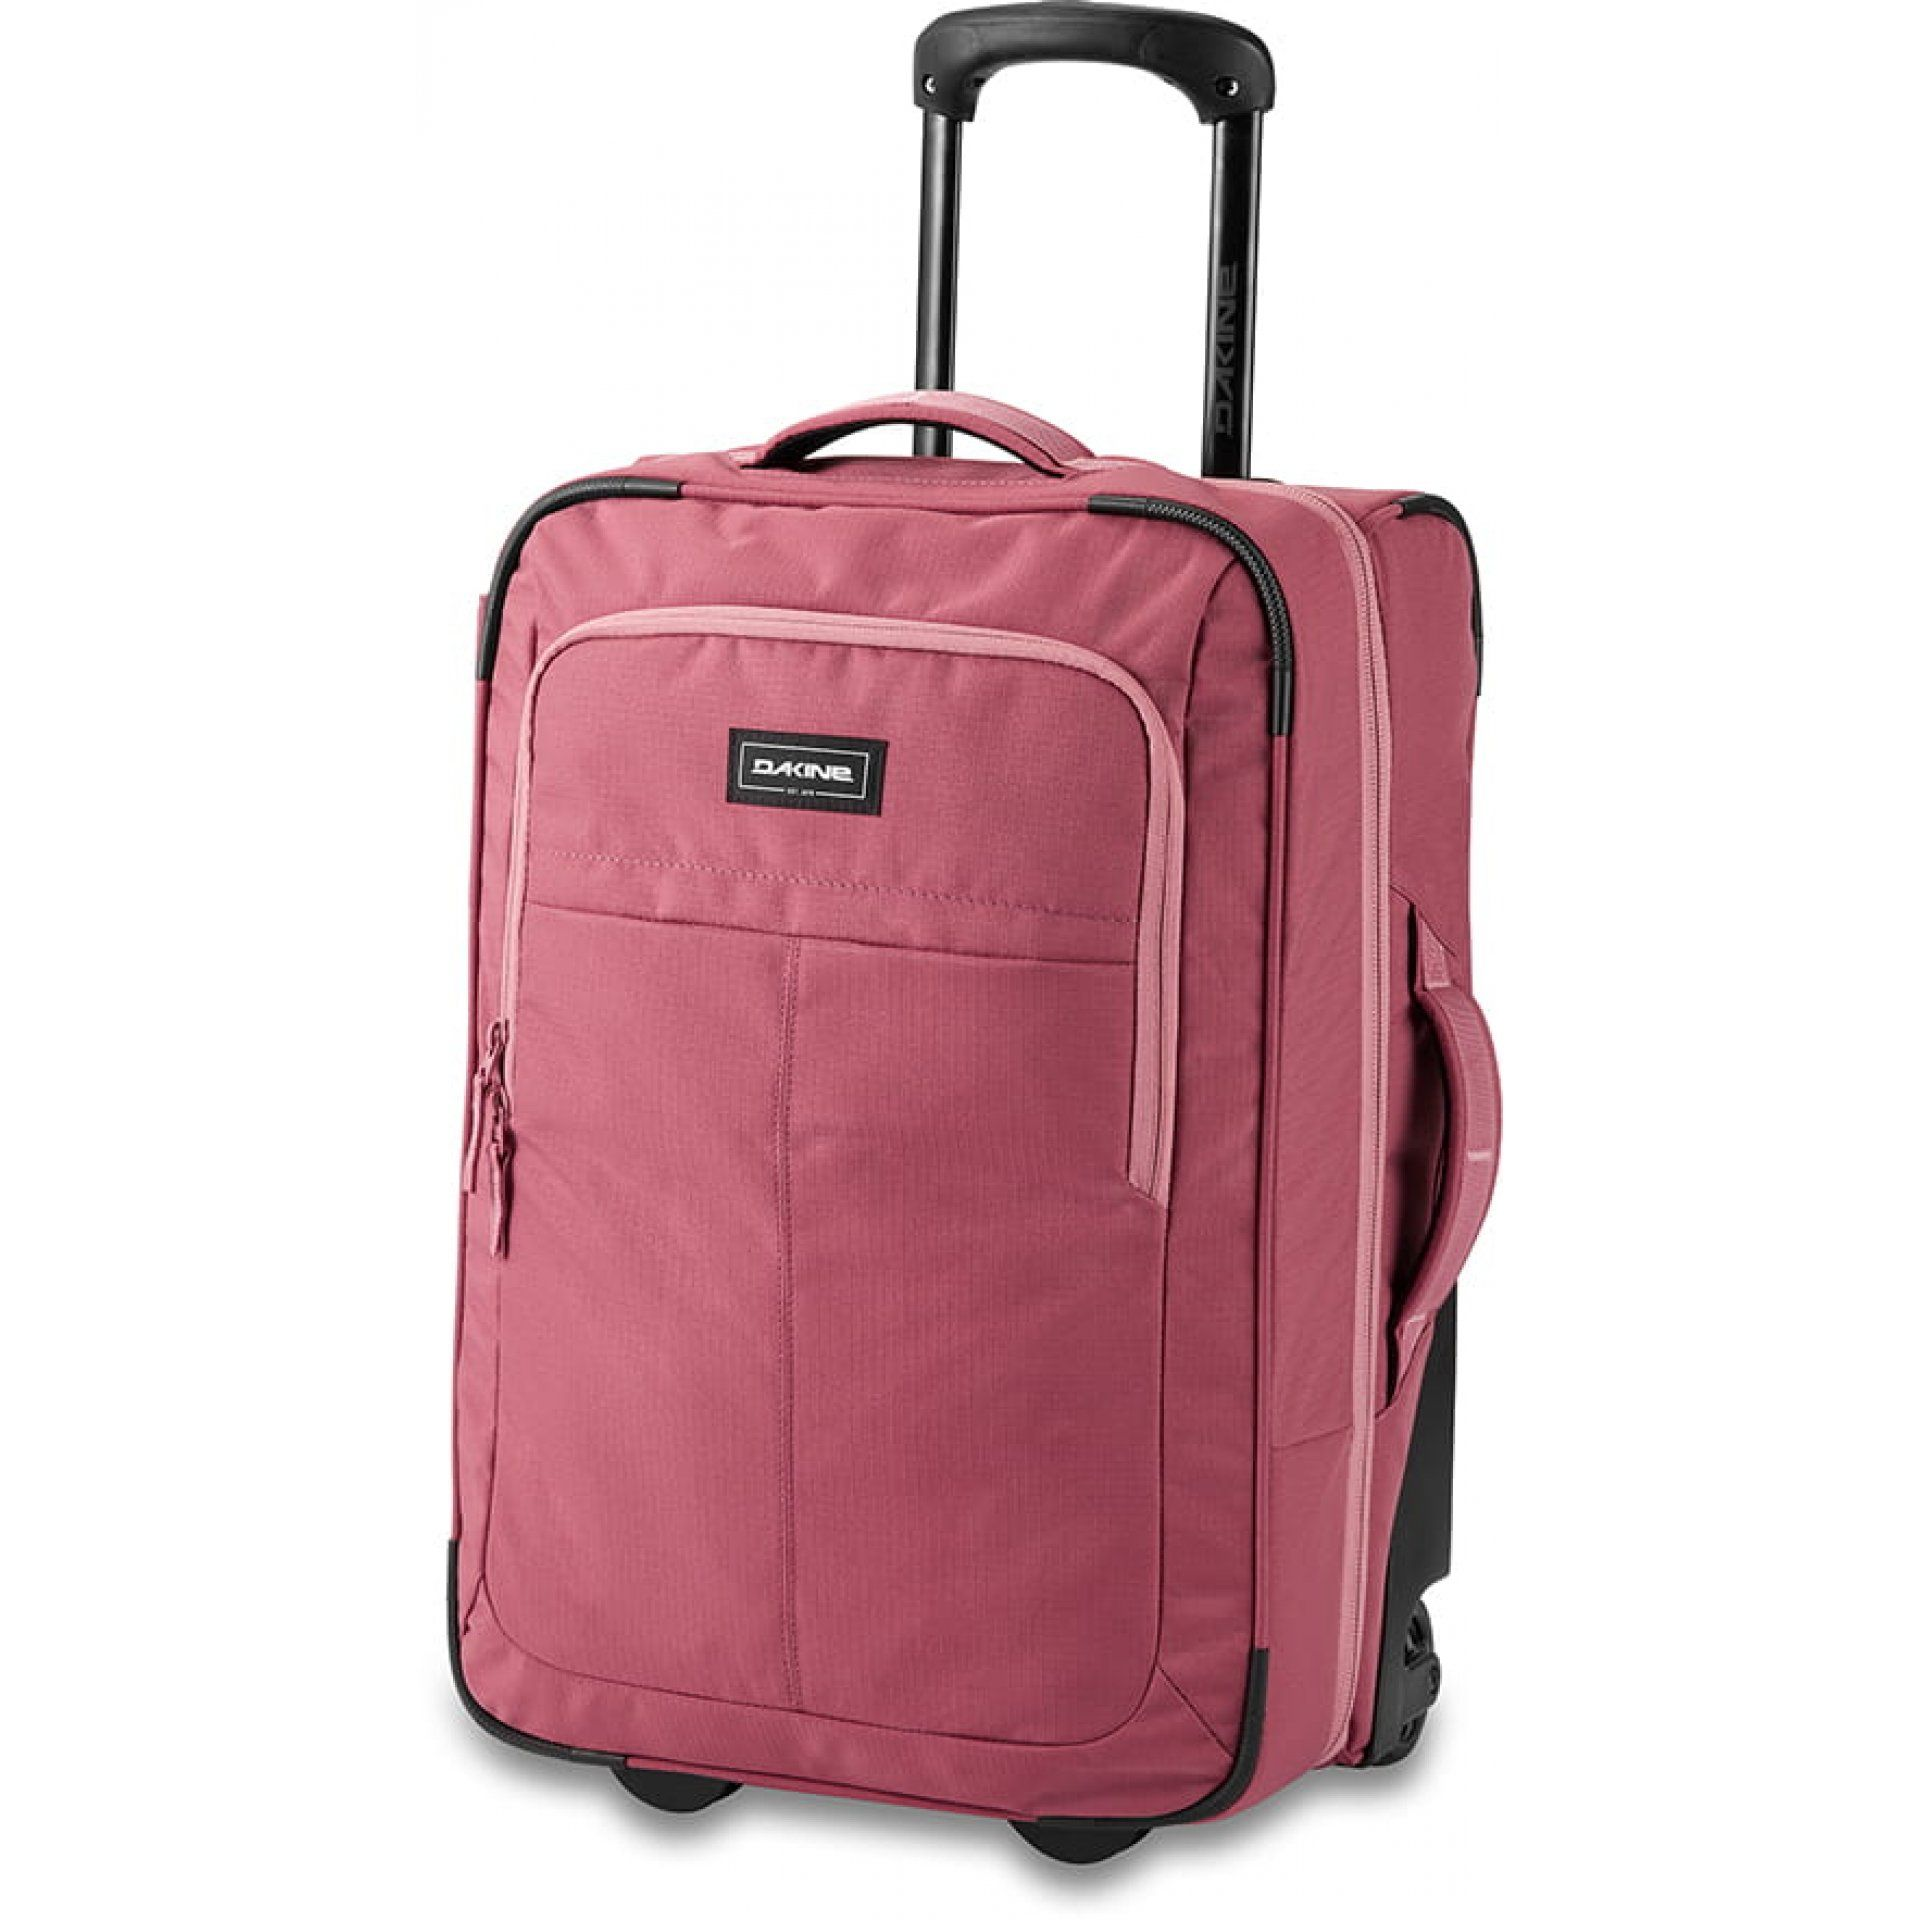 TORBA PODRÓŻNA DAKINE CARRY ON ROLLER 42L FADED GRAPE